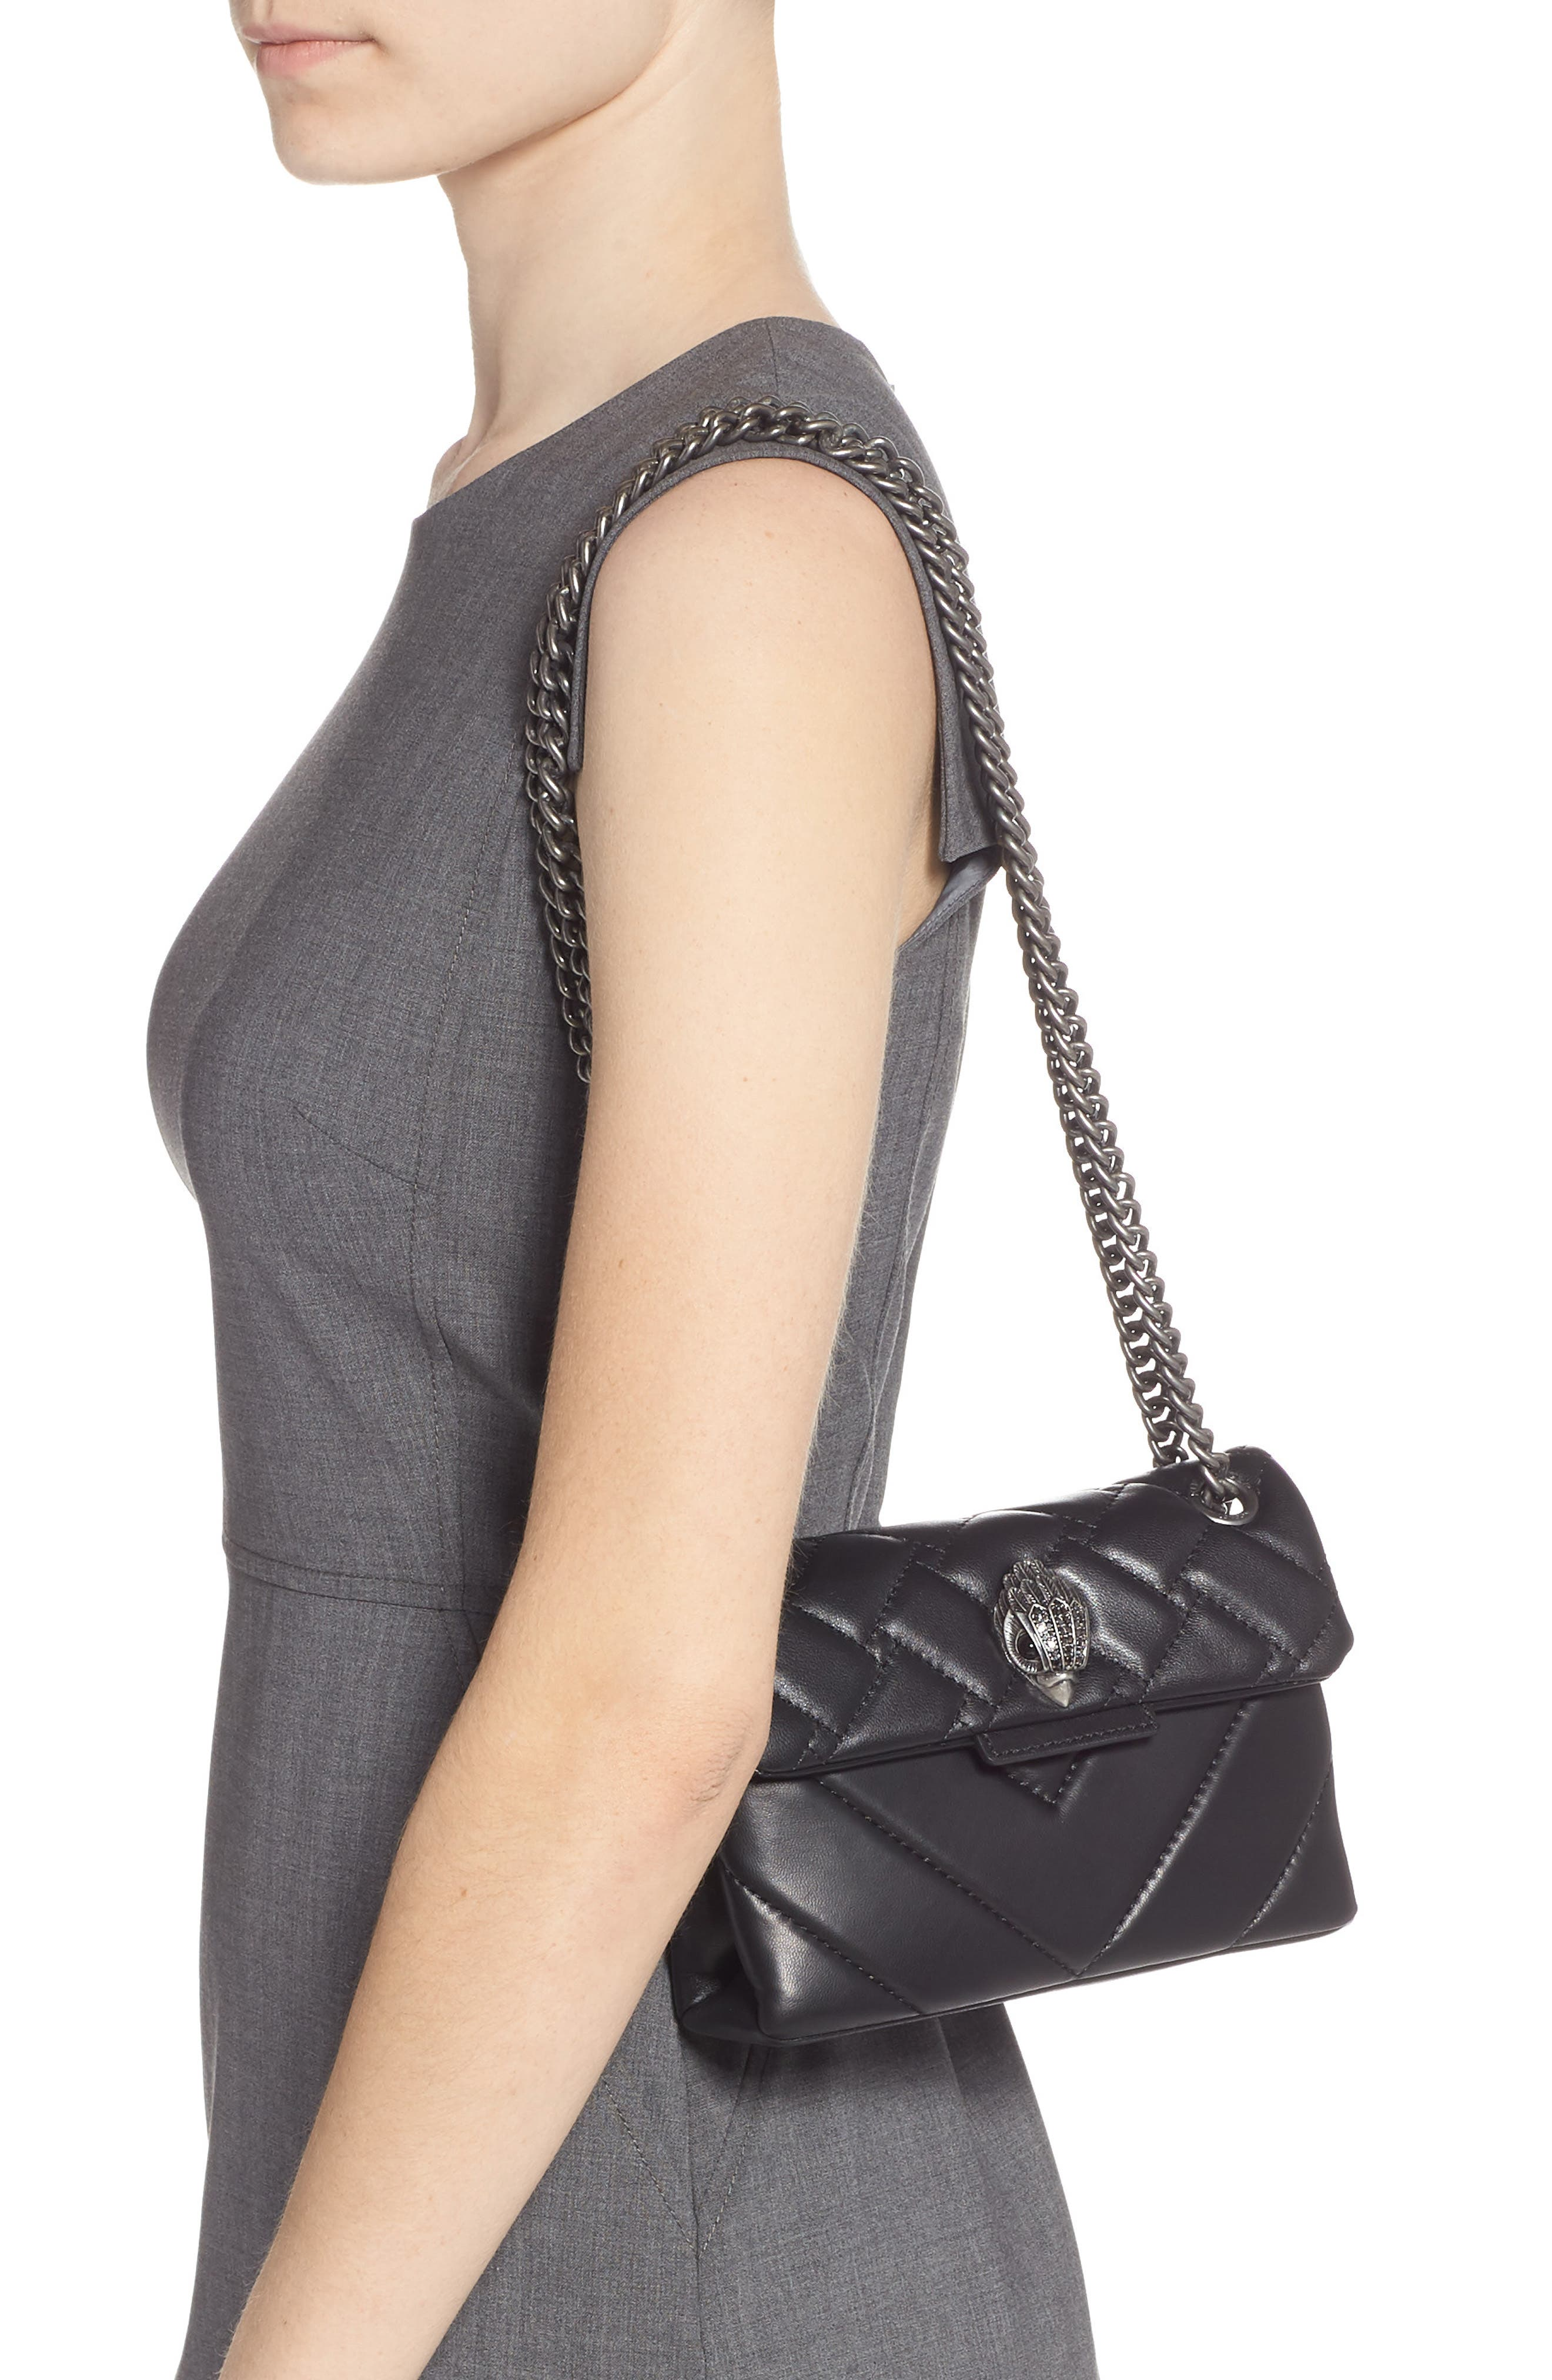 Mini Kensington Quilted Leather Crossbody Bag - Black